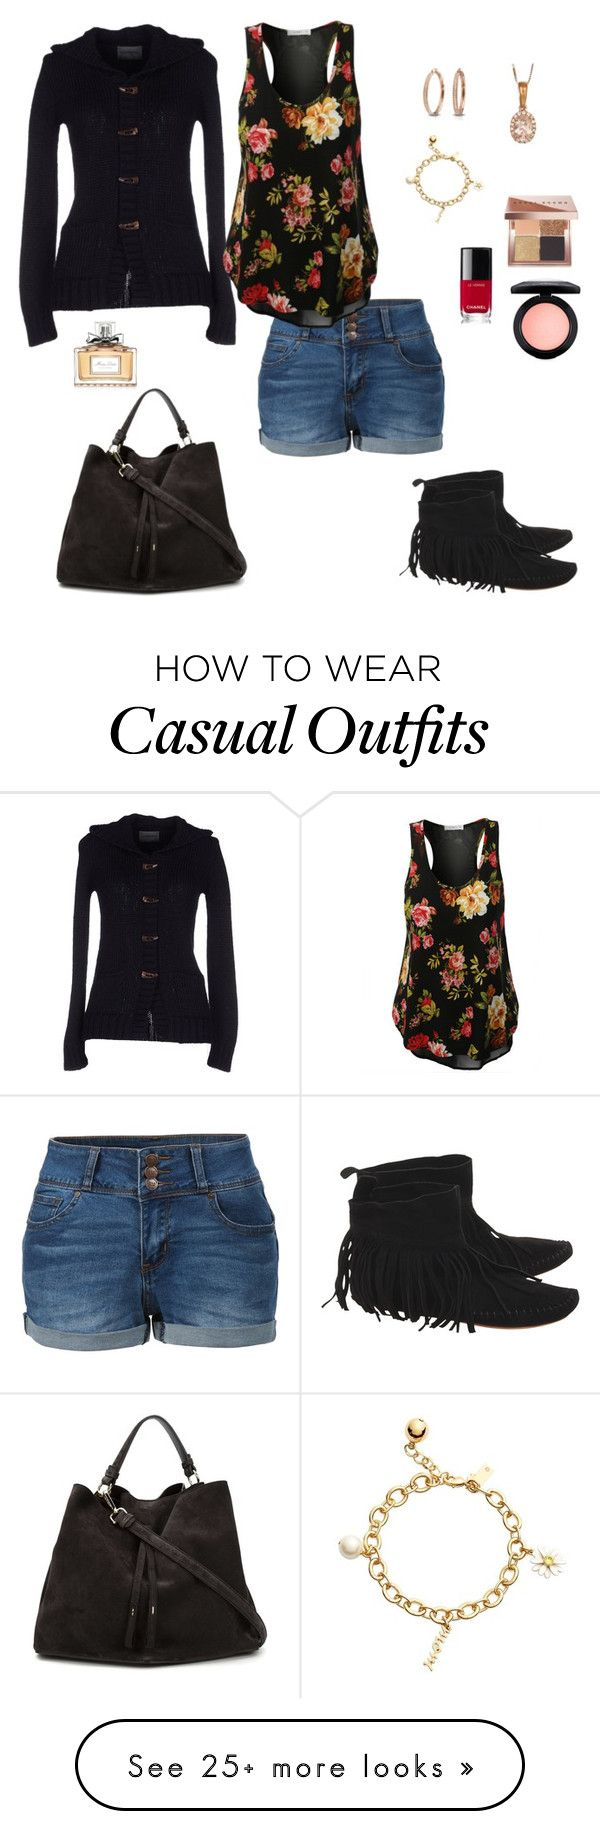 """""""casual chic"""" by karen-powell on Polyvore featuring LE3NO, Sarah Jackson, One Teaspoon, Kate Spade, MAC Cosmetics, Bling Jewelry, Maison Margiela, Christian Dior, Chanel and Bobbi Brown Cosmetics"""